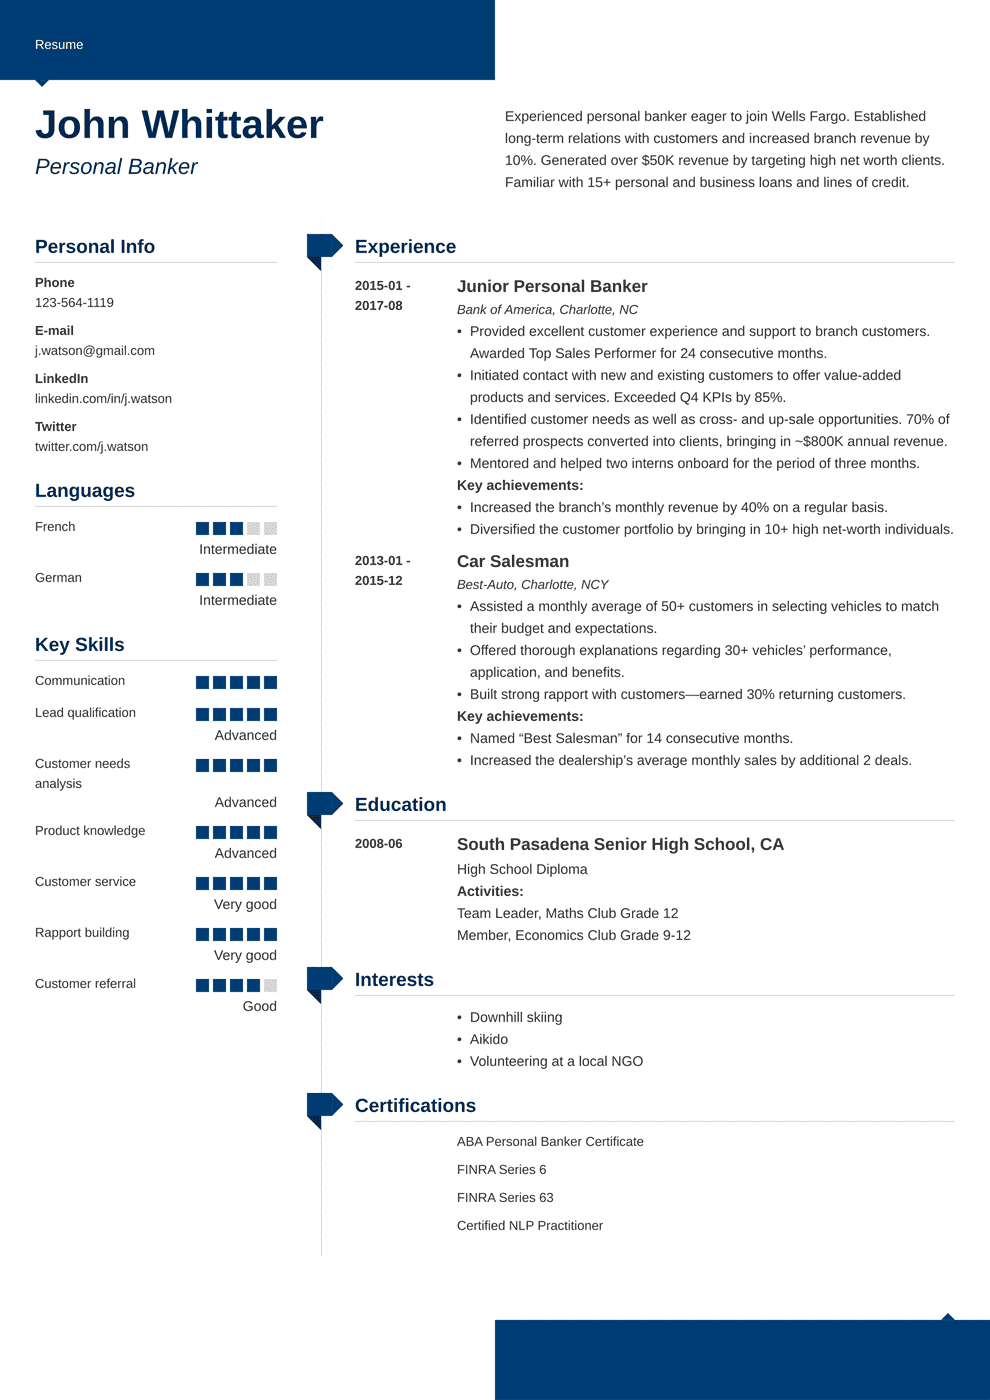 Personal Banker Resume: Sample and Writing Guide [20+ Examples]